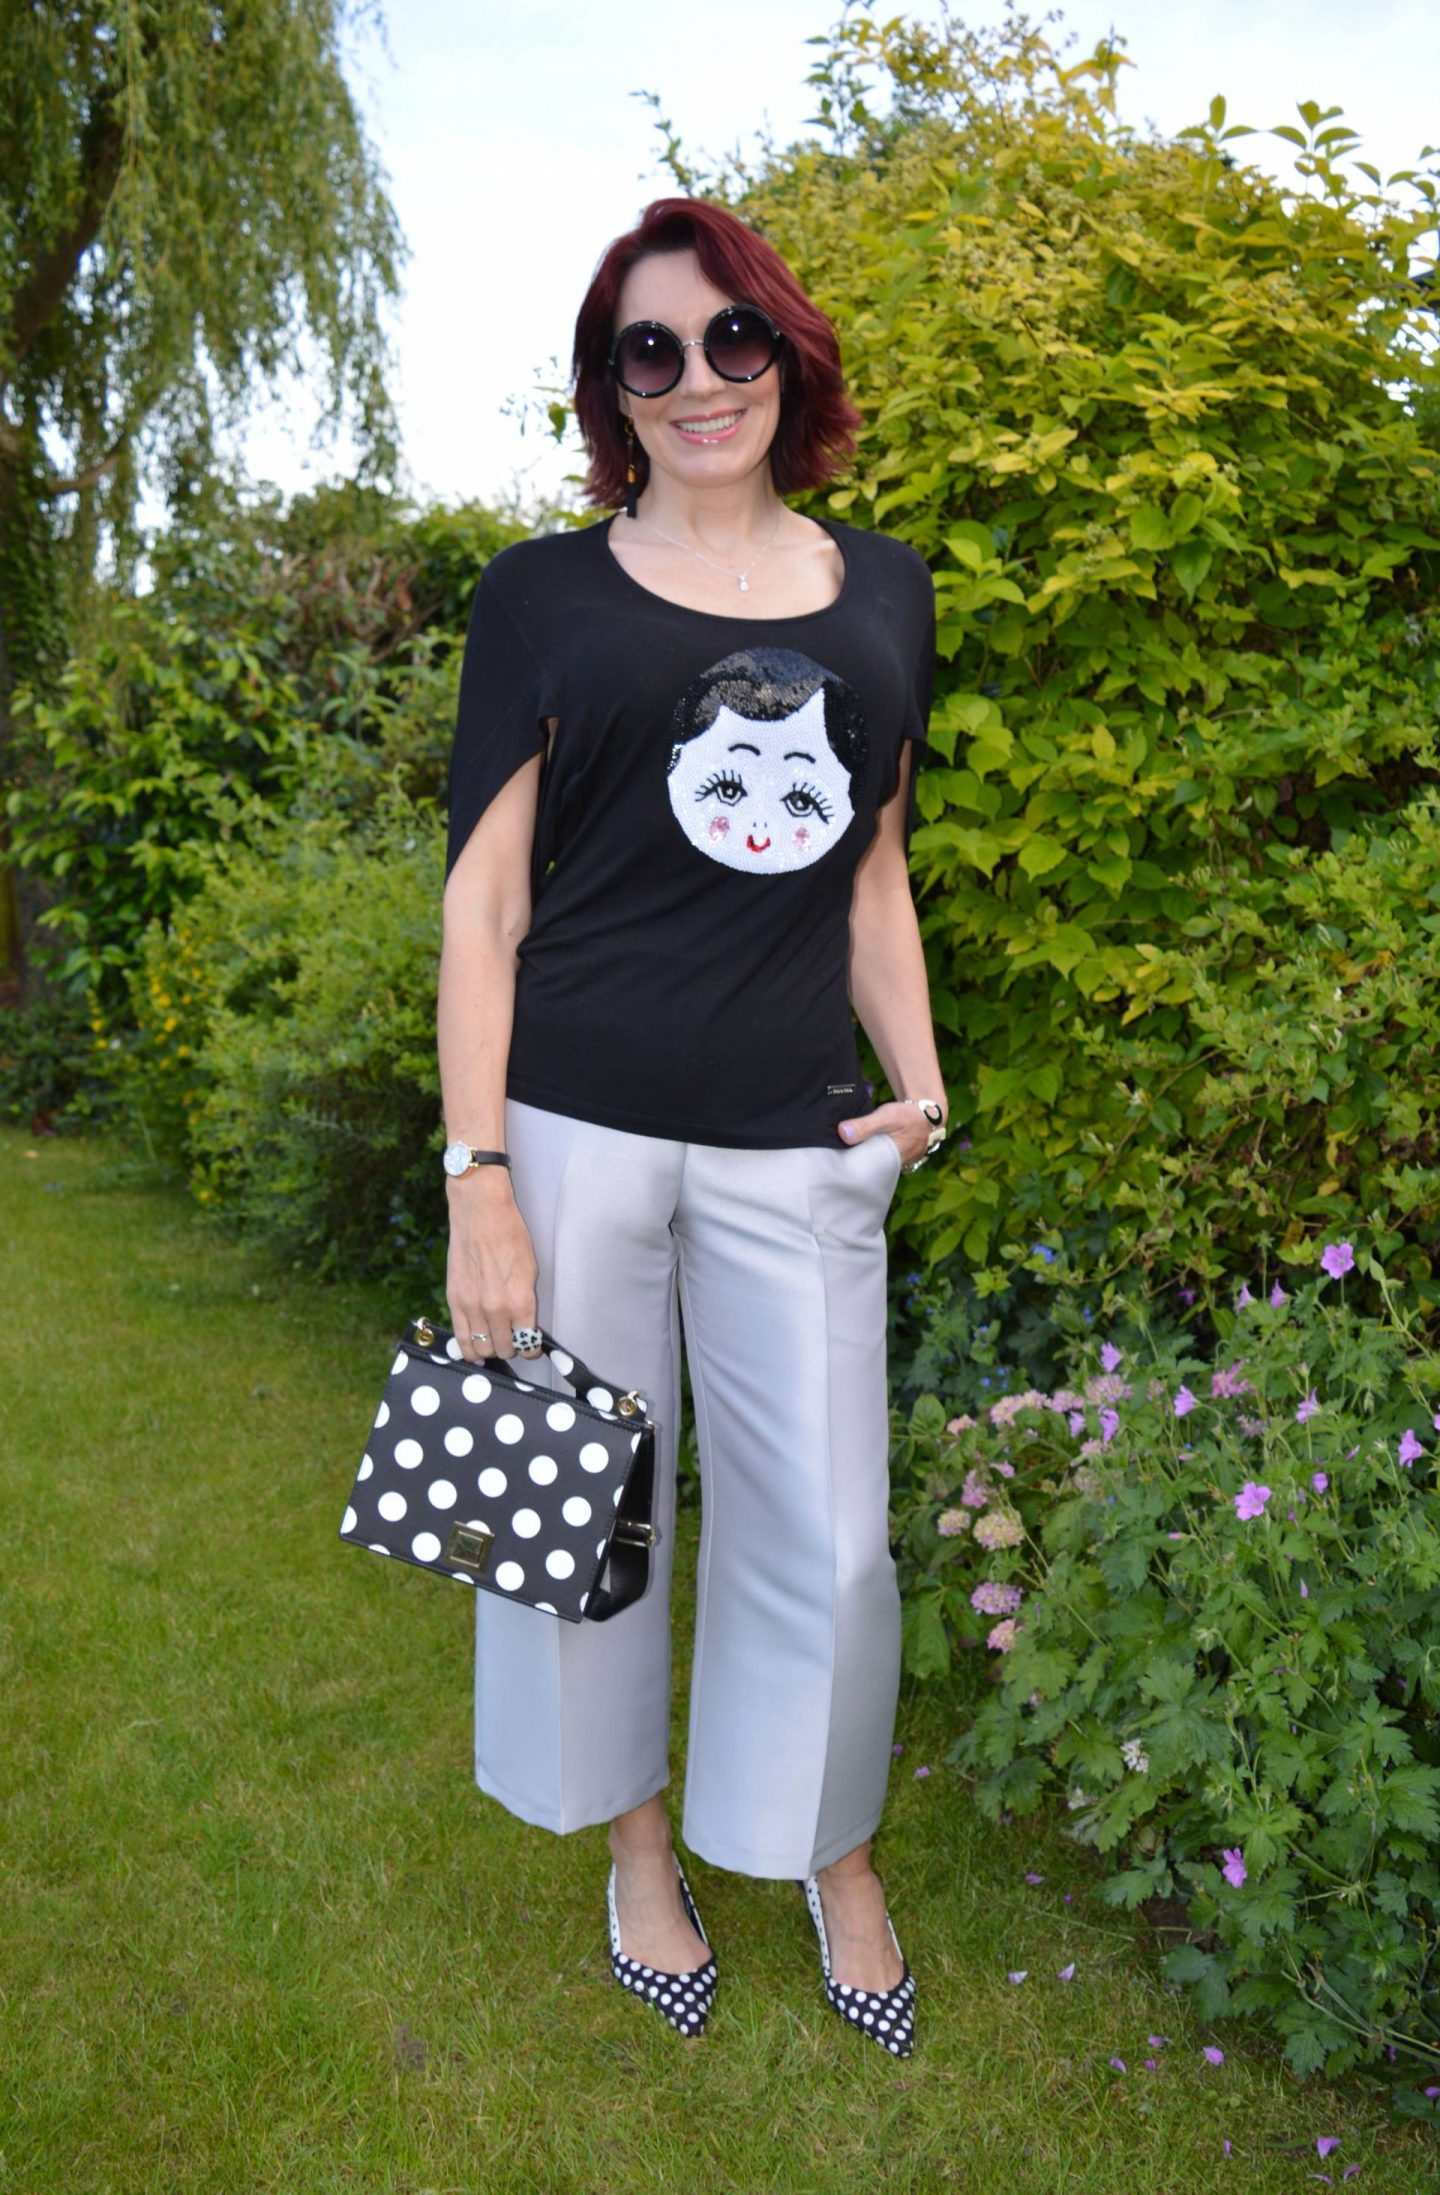 Sequin Face Top and Polka Dots